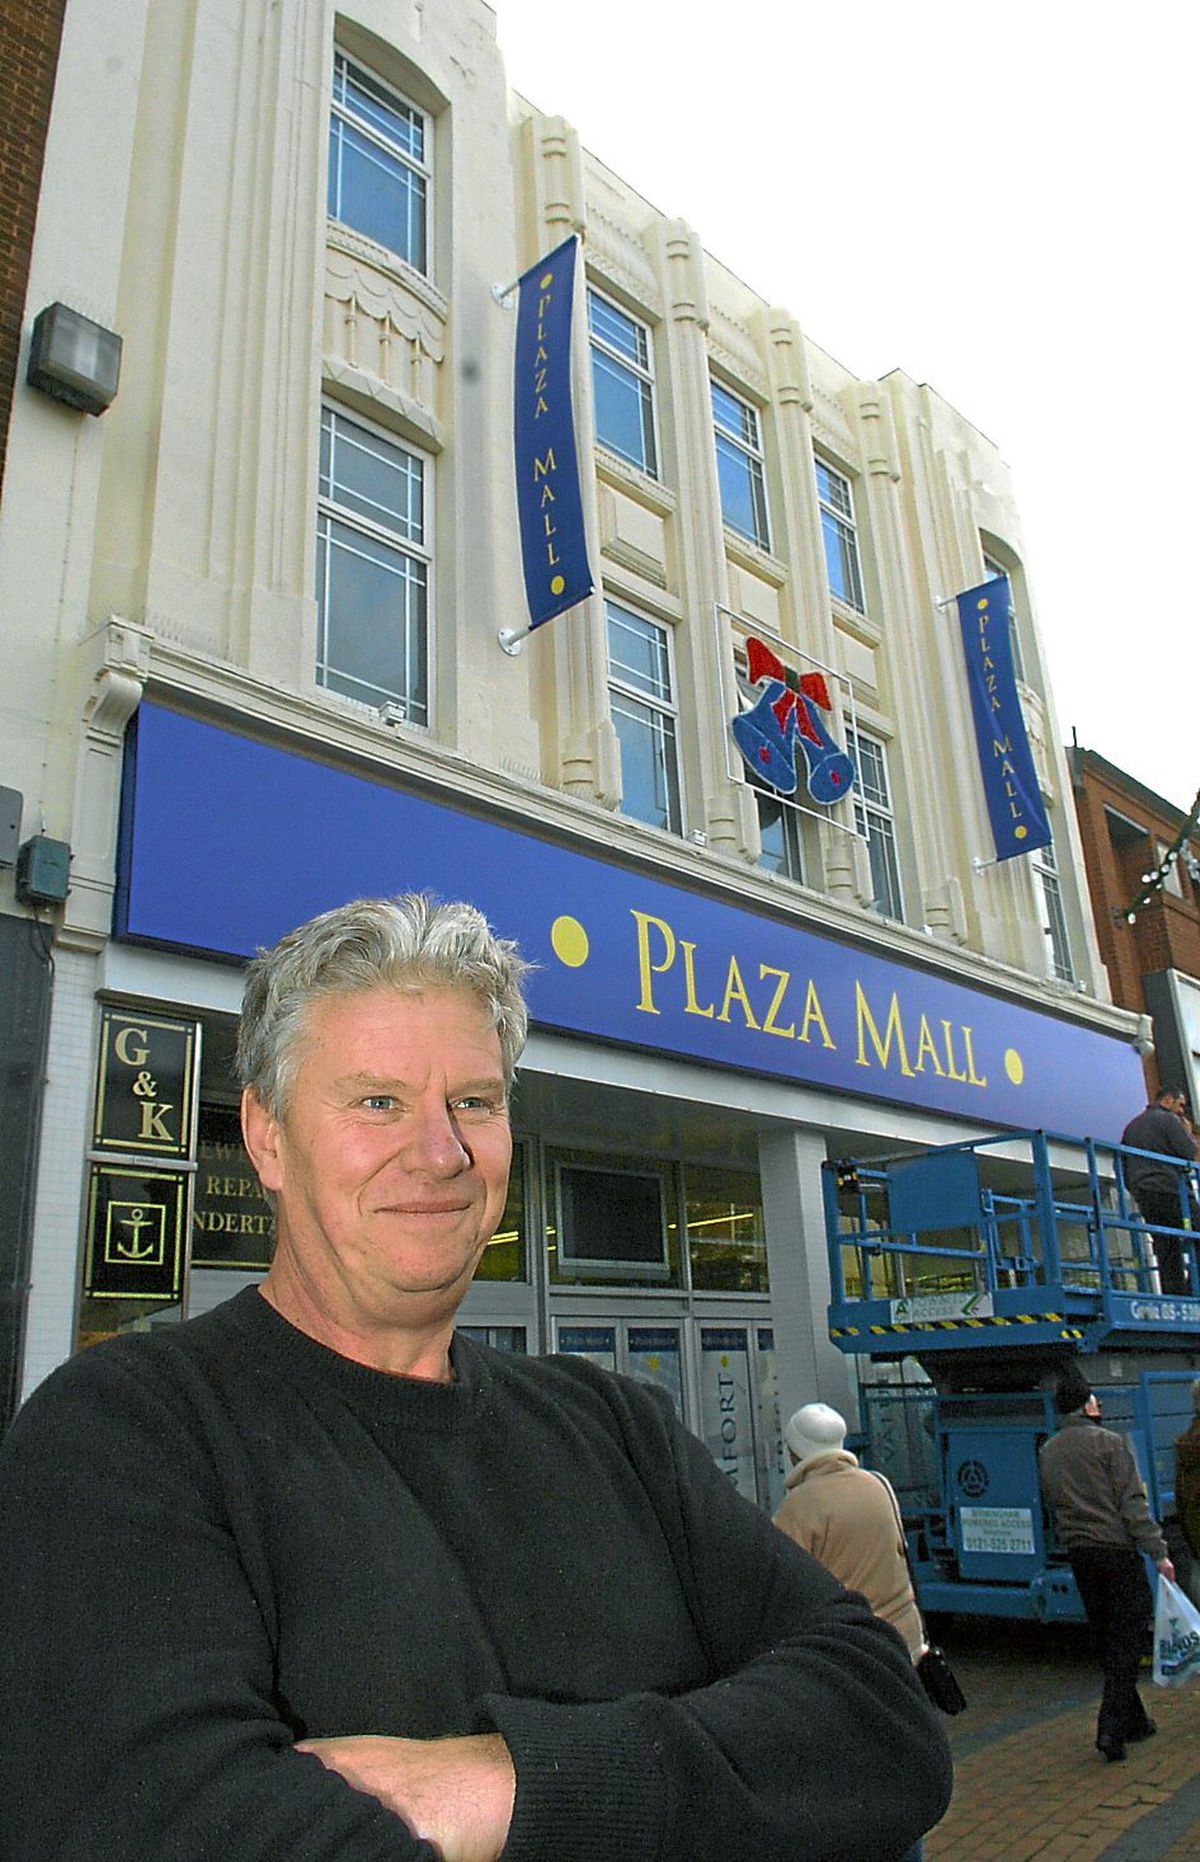 Tony Swannie converted the Dudley Woolworths into the Plaza Mall shopping arcade